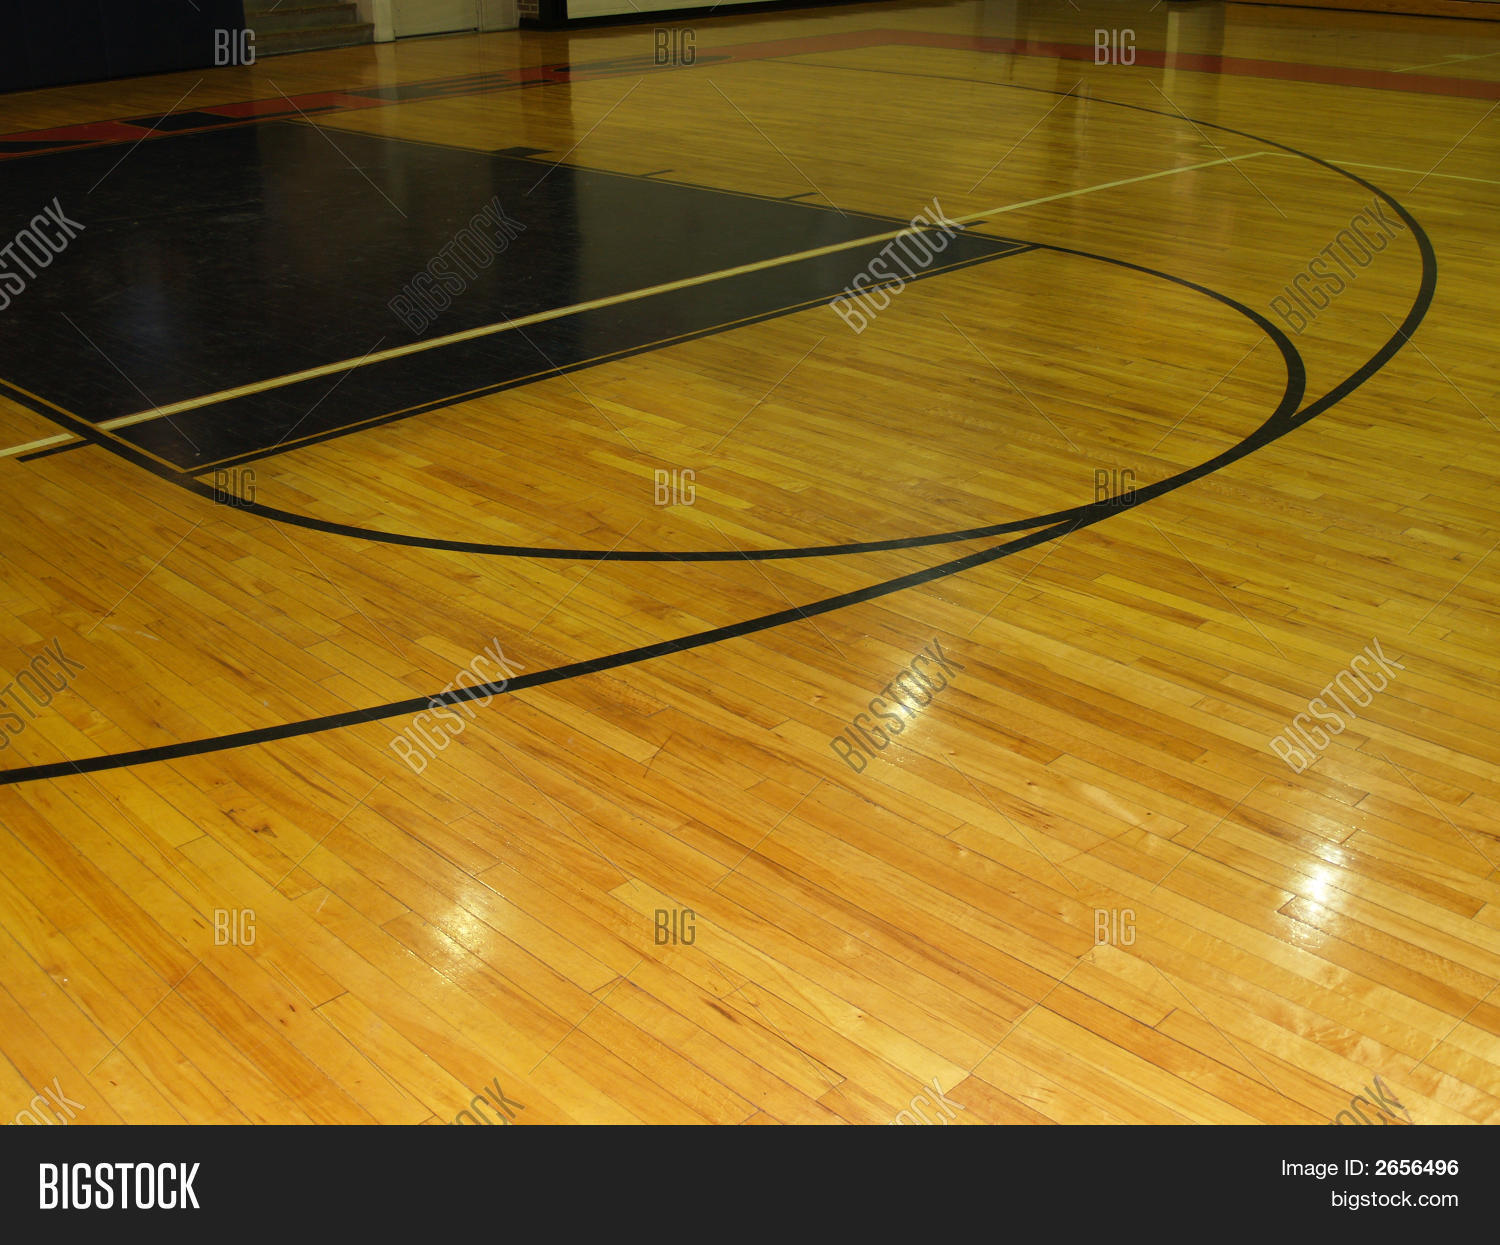 Wood Floor On Indoor Image & Photo (Free Trial) | Bigstock